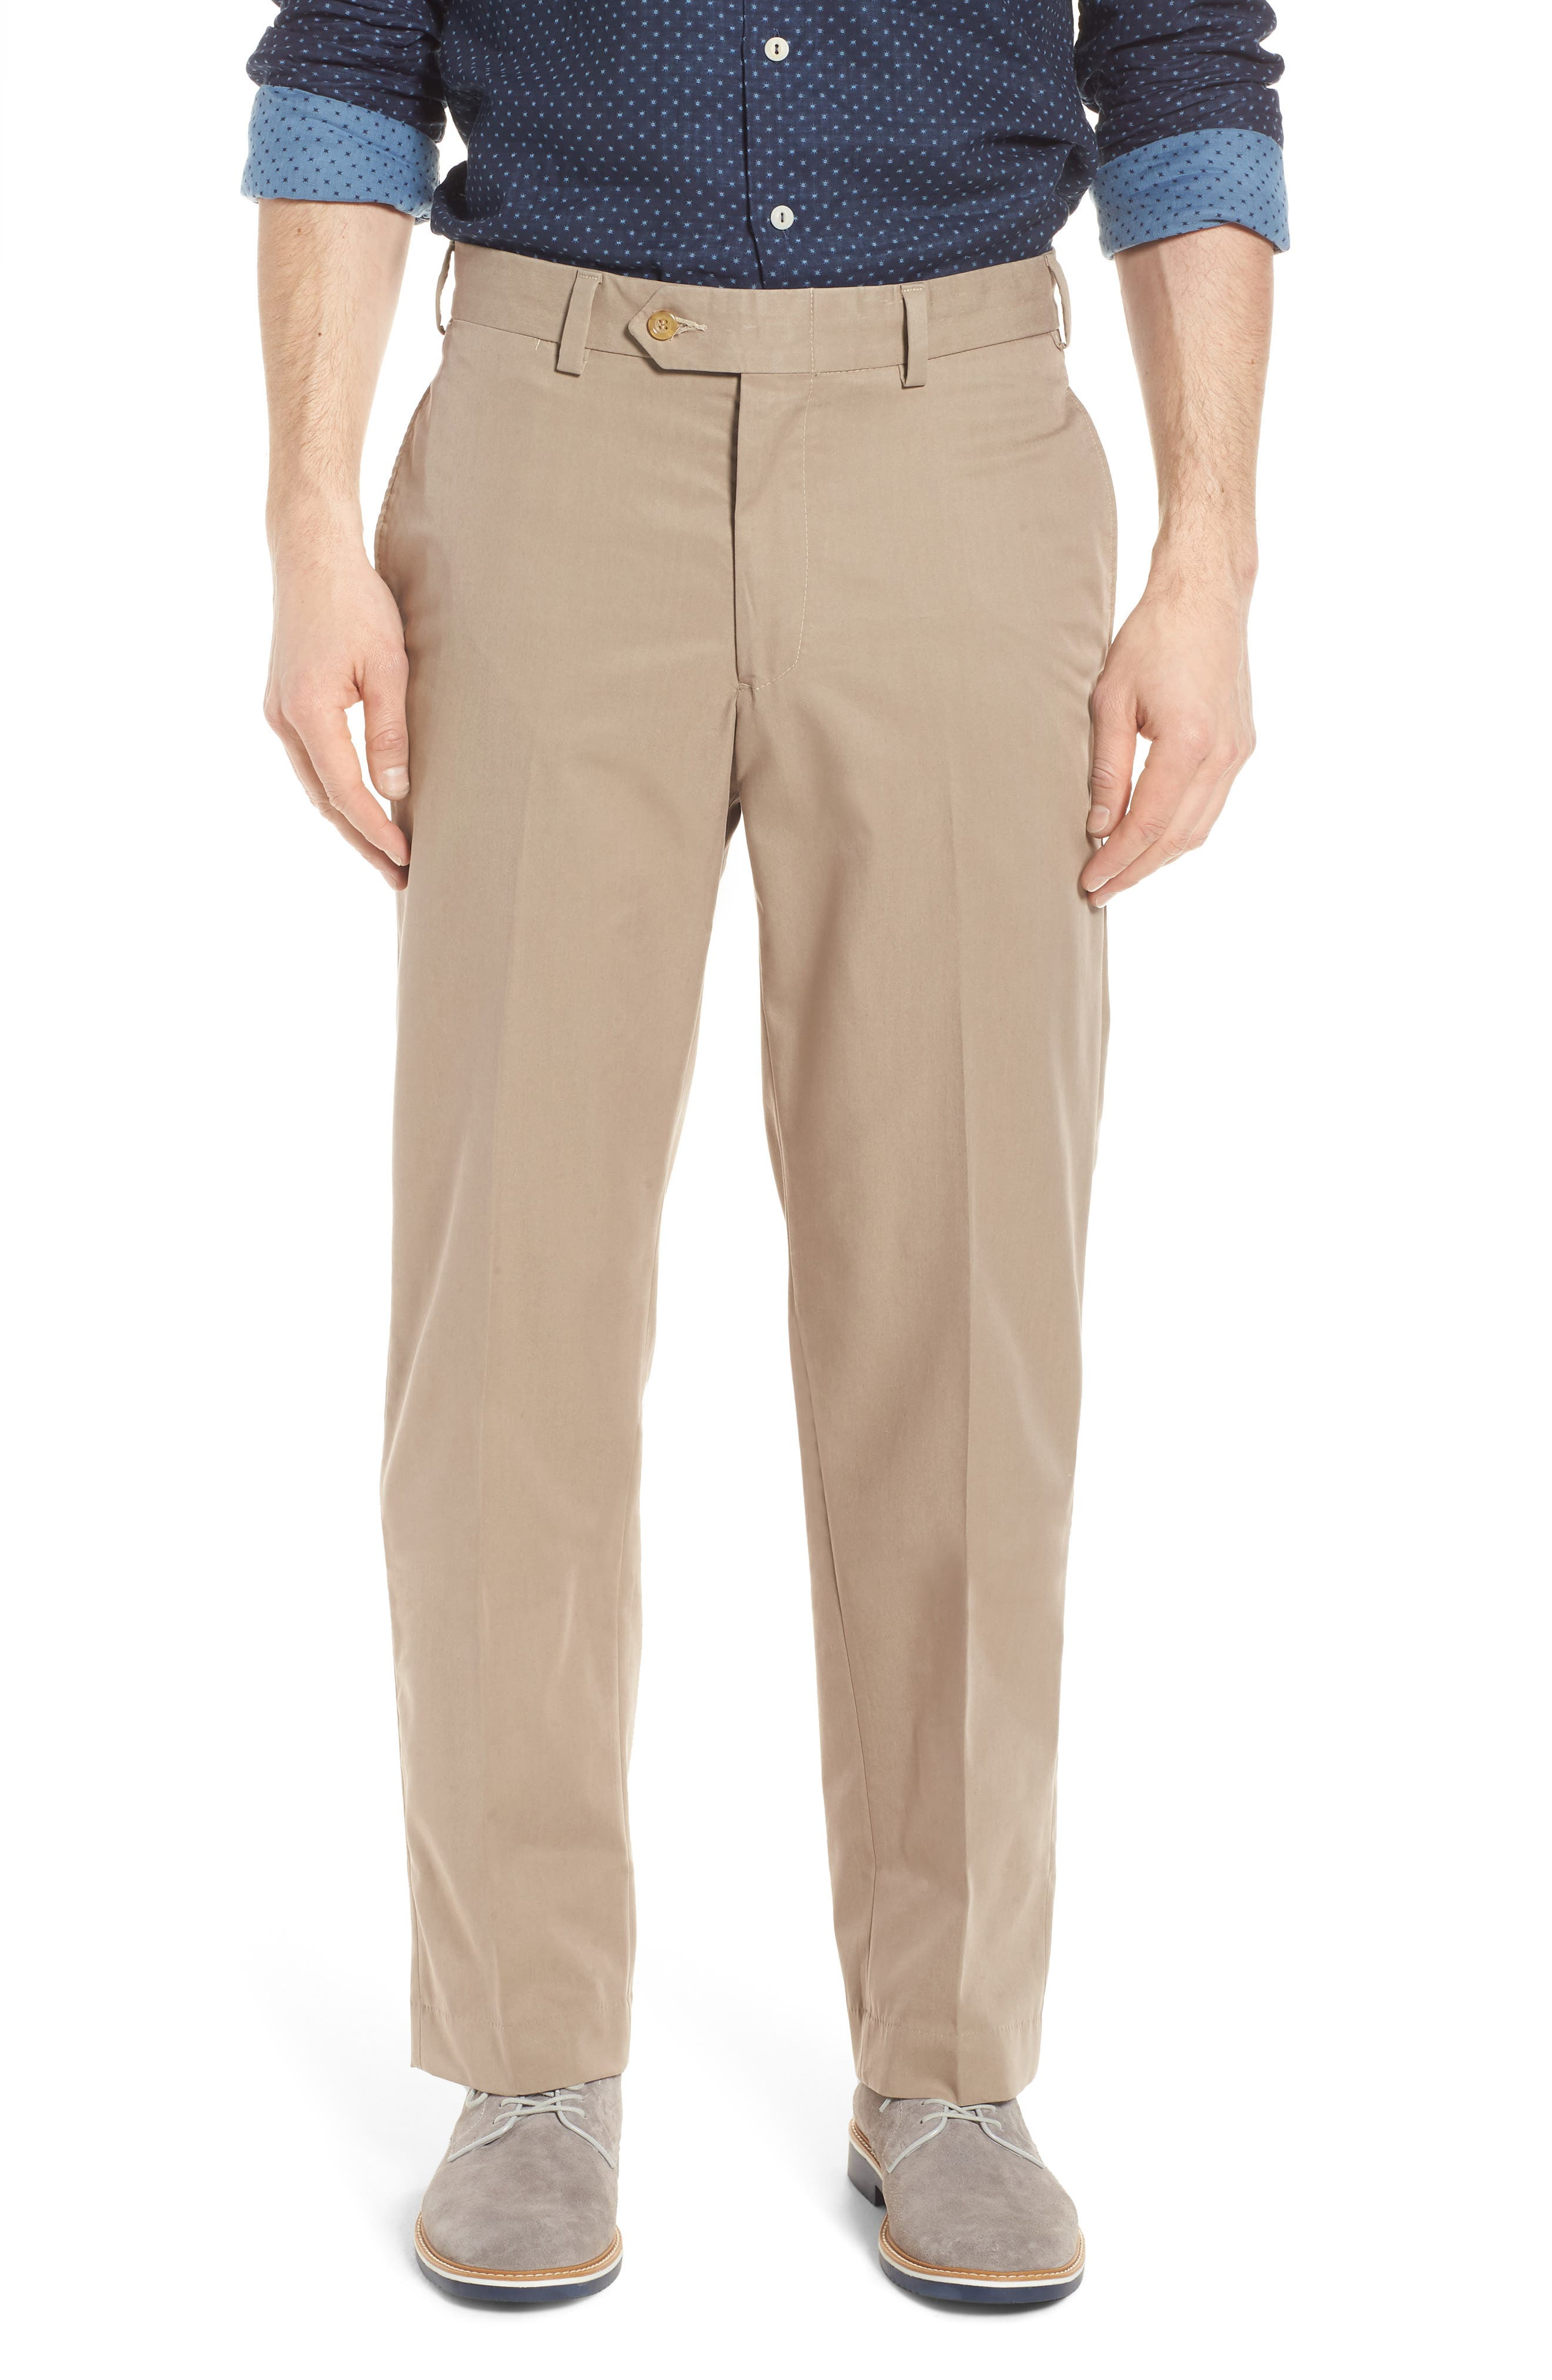 Bills Khakis M2 Classic Fit Flat Front Travel Twill Pants